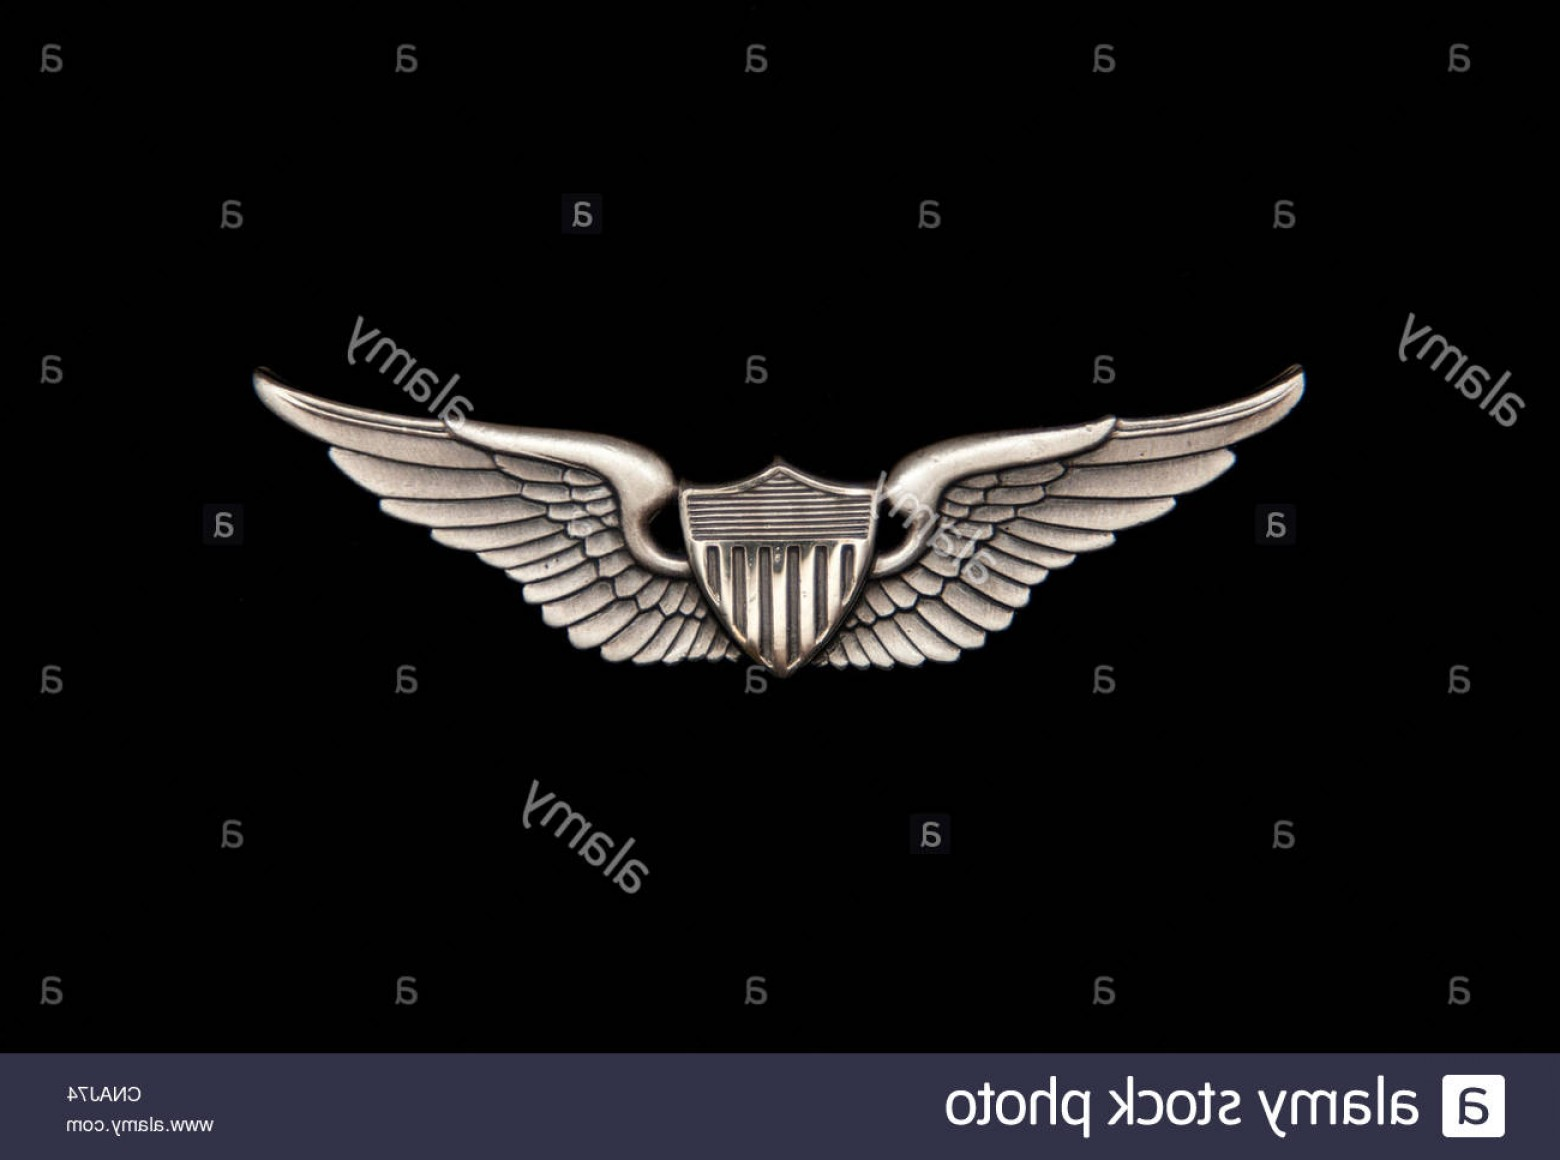 Army Aviator Wings Vector: Stock Photo Us Army Aviator Wings